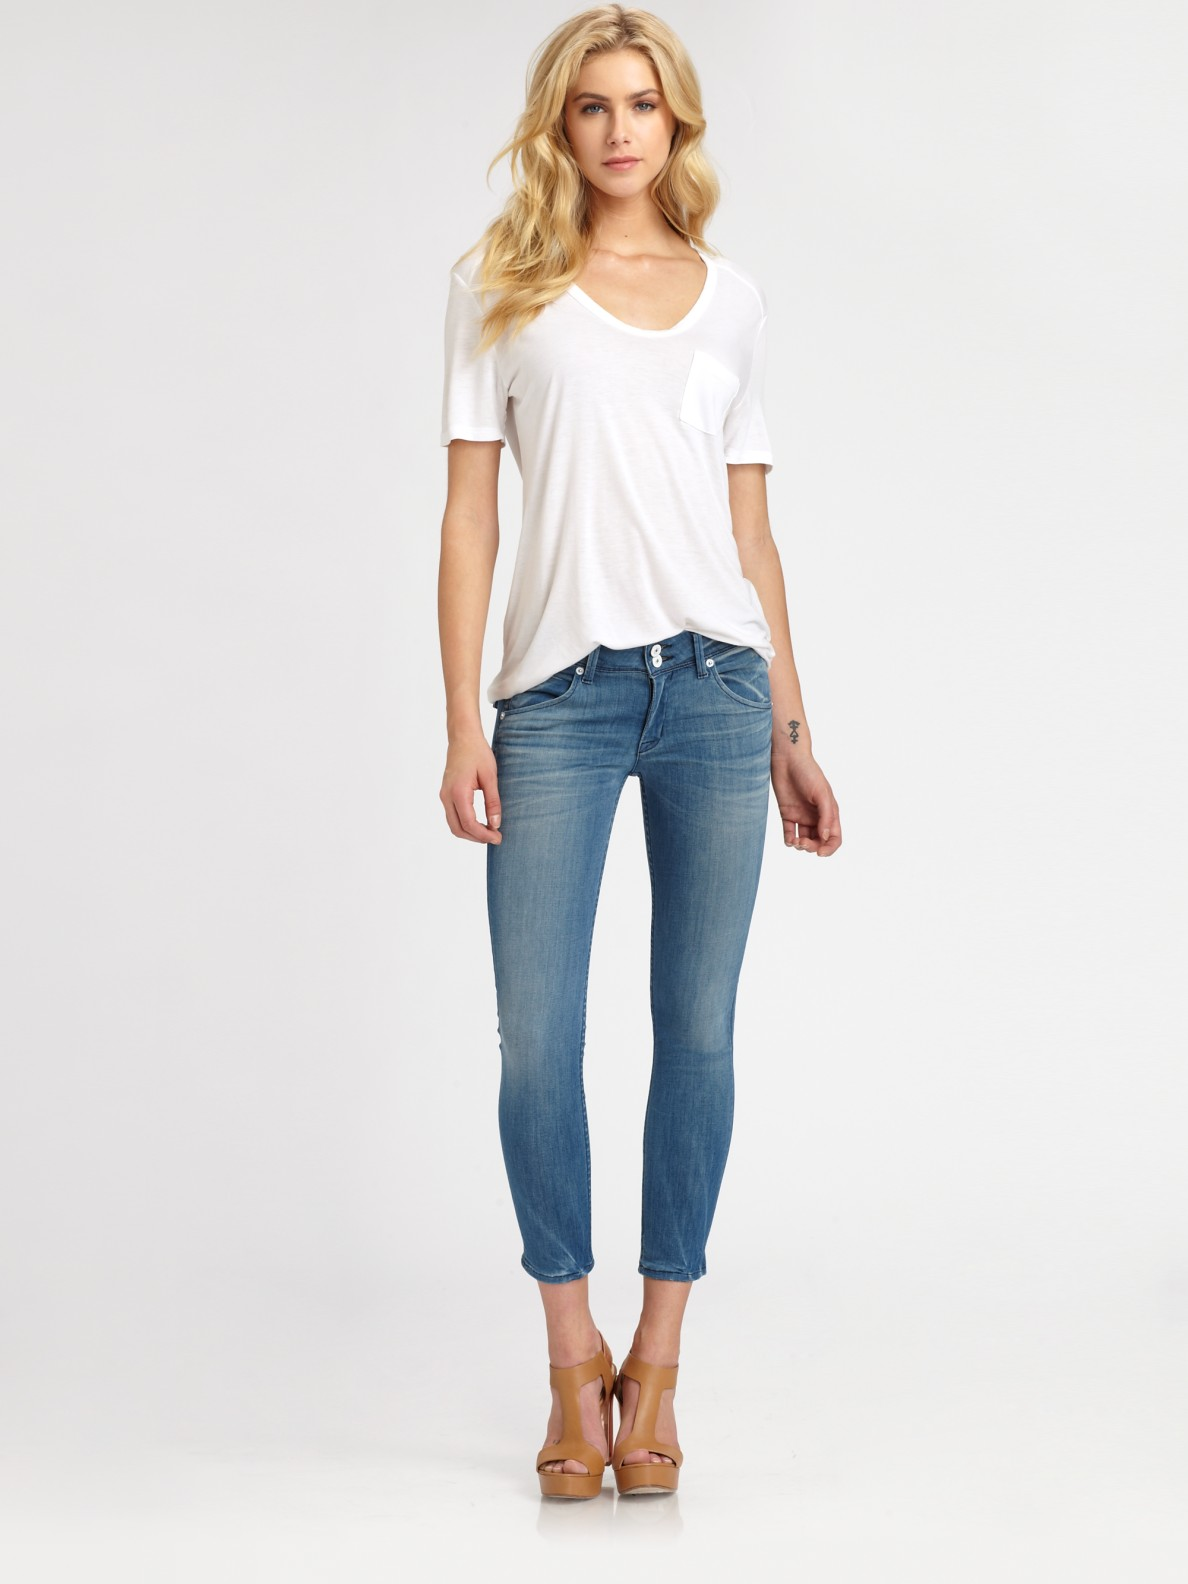 Hannah - Skinny Slim Crop Jeans - Addicting Wash. Hannah, our best-selling jean body, is a low rise cropped skinny with a magic inseam graded to create the perfect skinny for petite figures, while also creating a flattering crop for taller women.